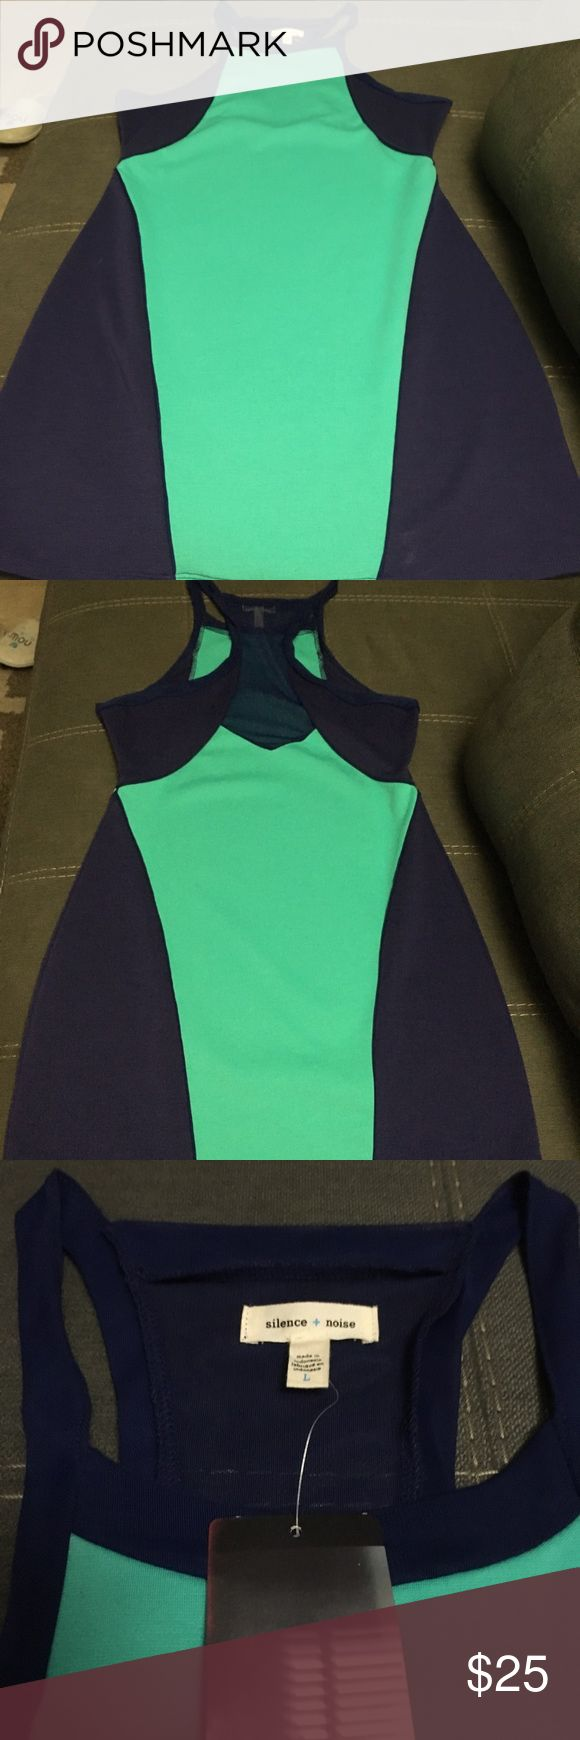 Turquoise and Violet Body Mini Dress Amazing Girls Night Body Hugging Dress from Silence + Noise Size L. (Urban Outfitters Brand) Never worn and brand new with tag. silence + noise Dresses Mini